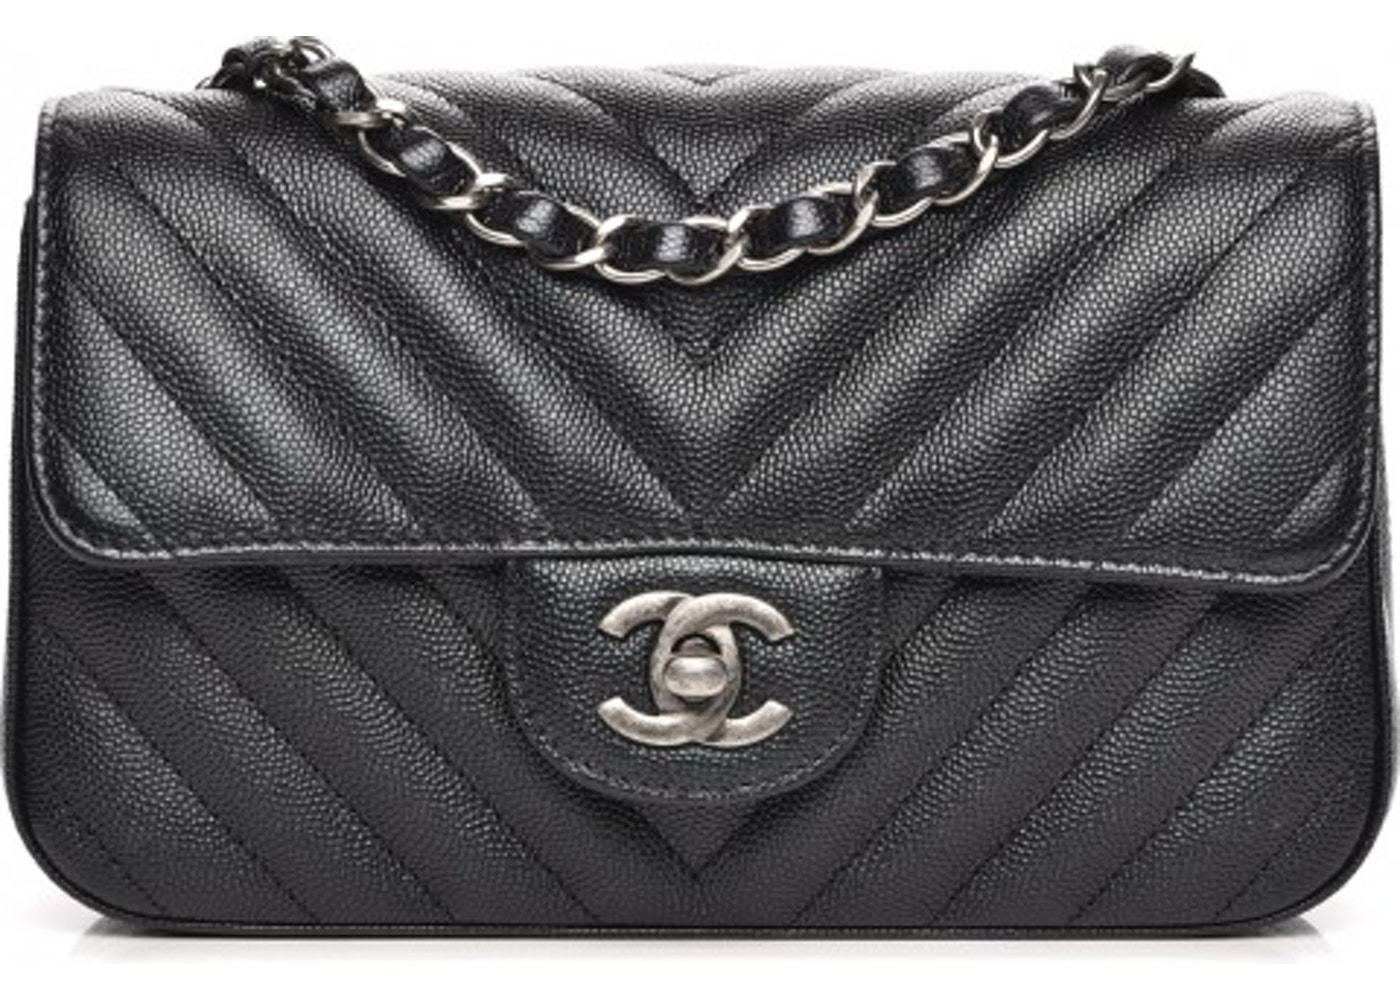 9011dfca0fcd54 Chanel Rectangular Flap Chevron Quilted Metallic Mini Black